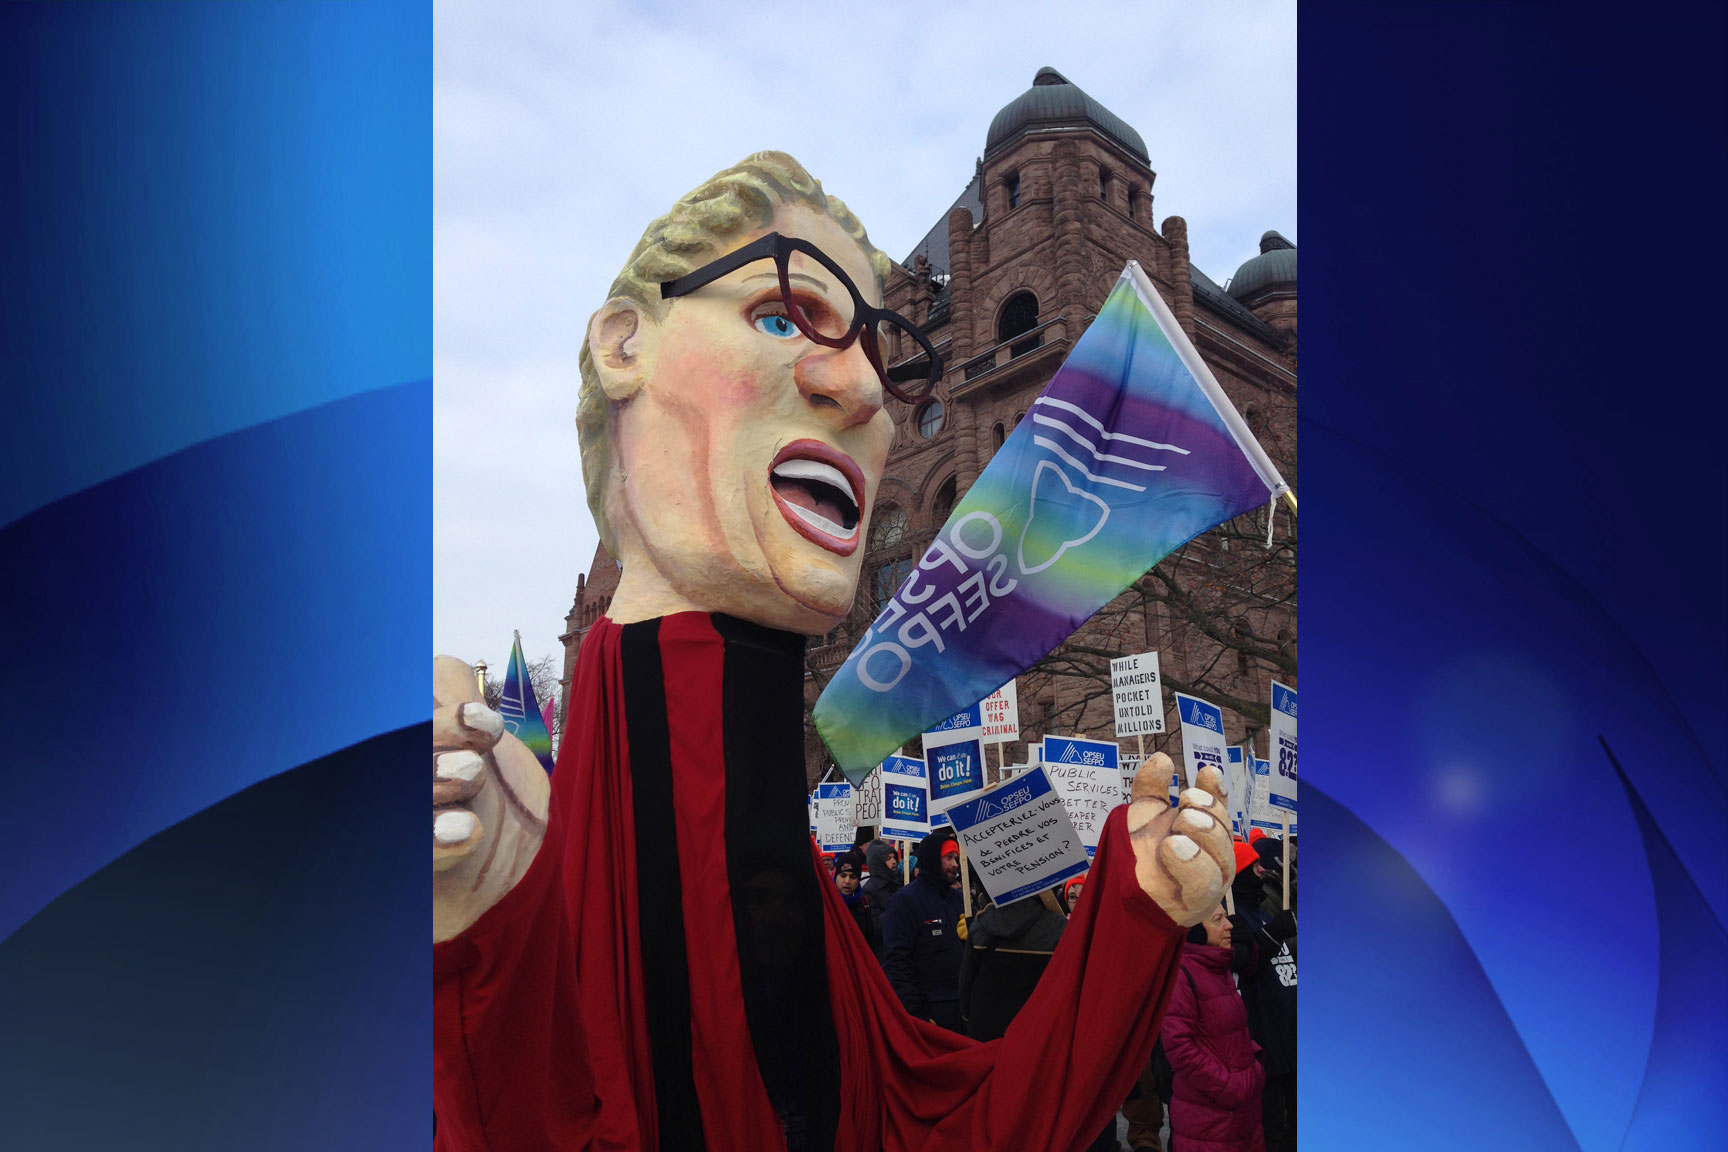 A caricature of Ontario Premier Kathleen Wynne at the public service workers rally at Queen's Park on Feb. 17, 2015. CITYNEWS/Peter Dworschak